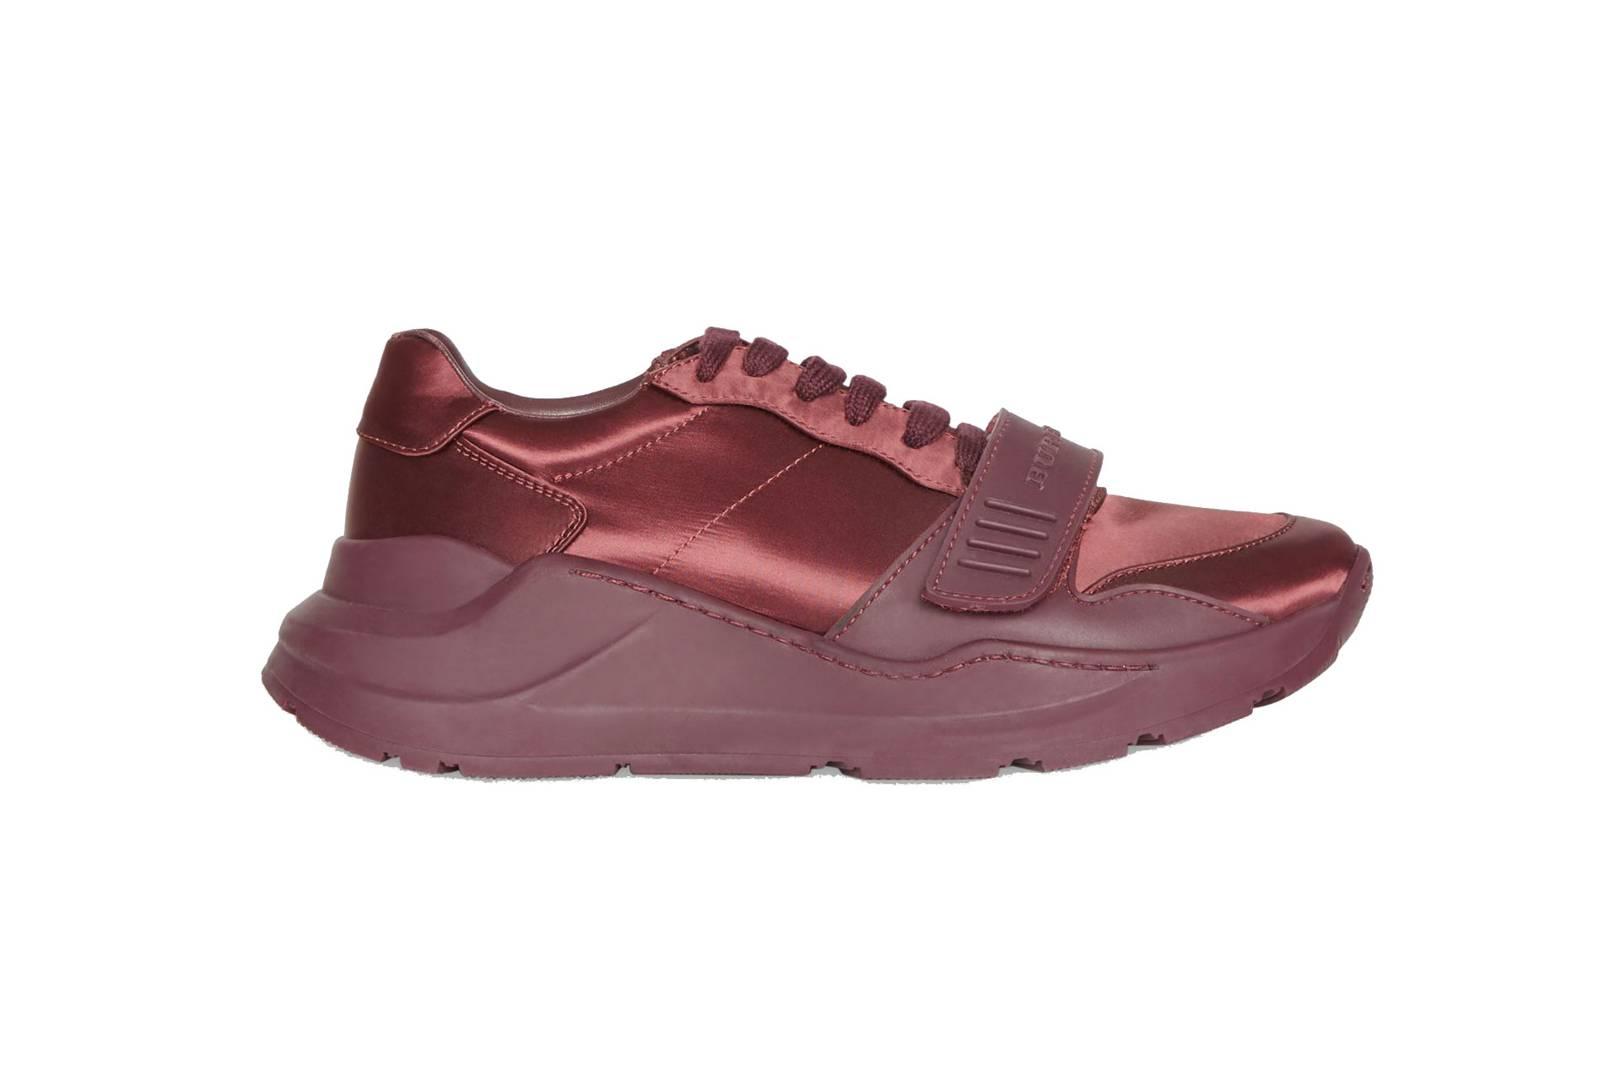 Burberry - Satin sneakers, £430